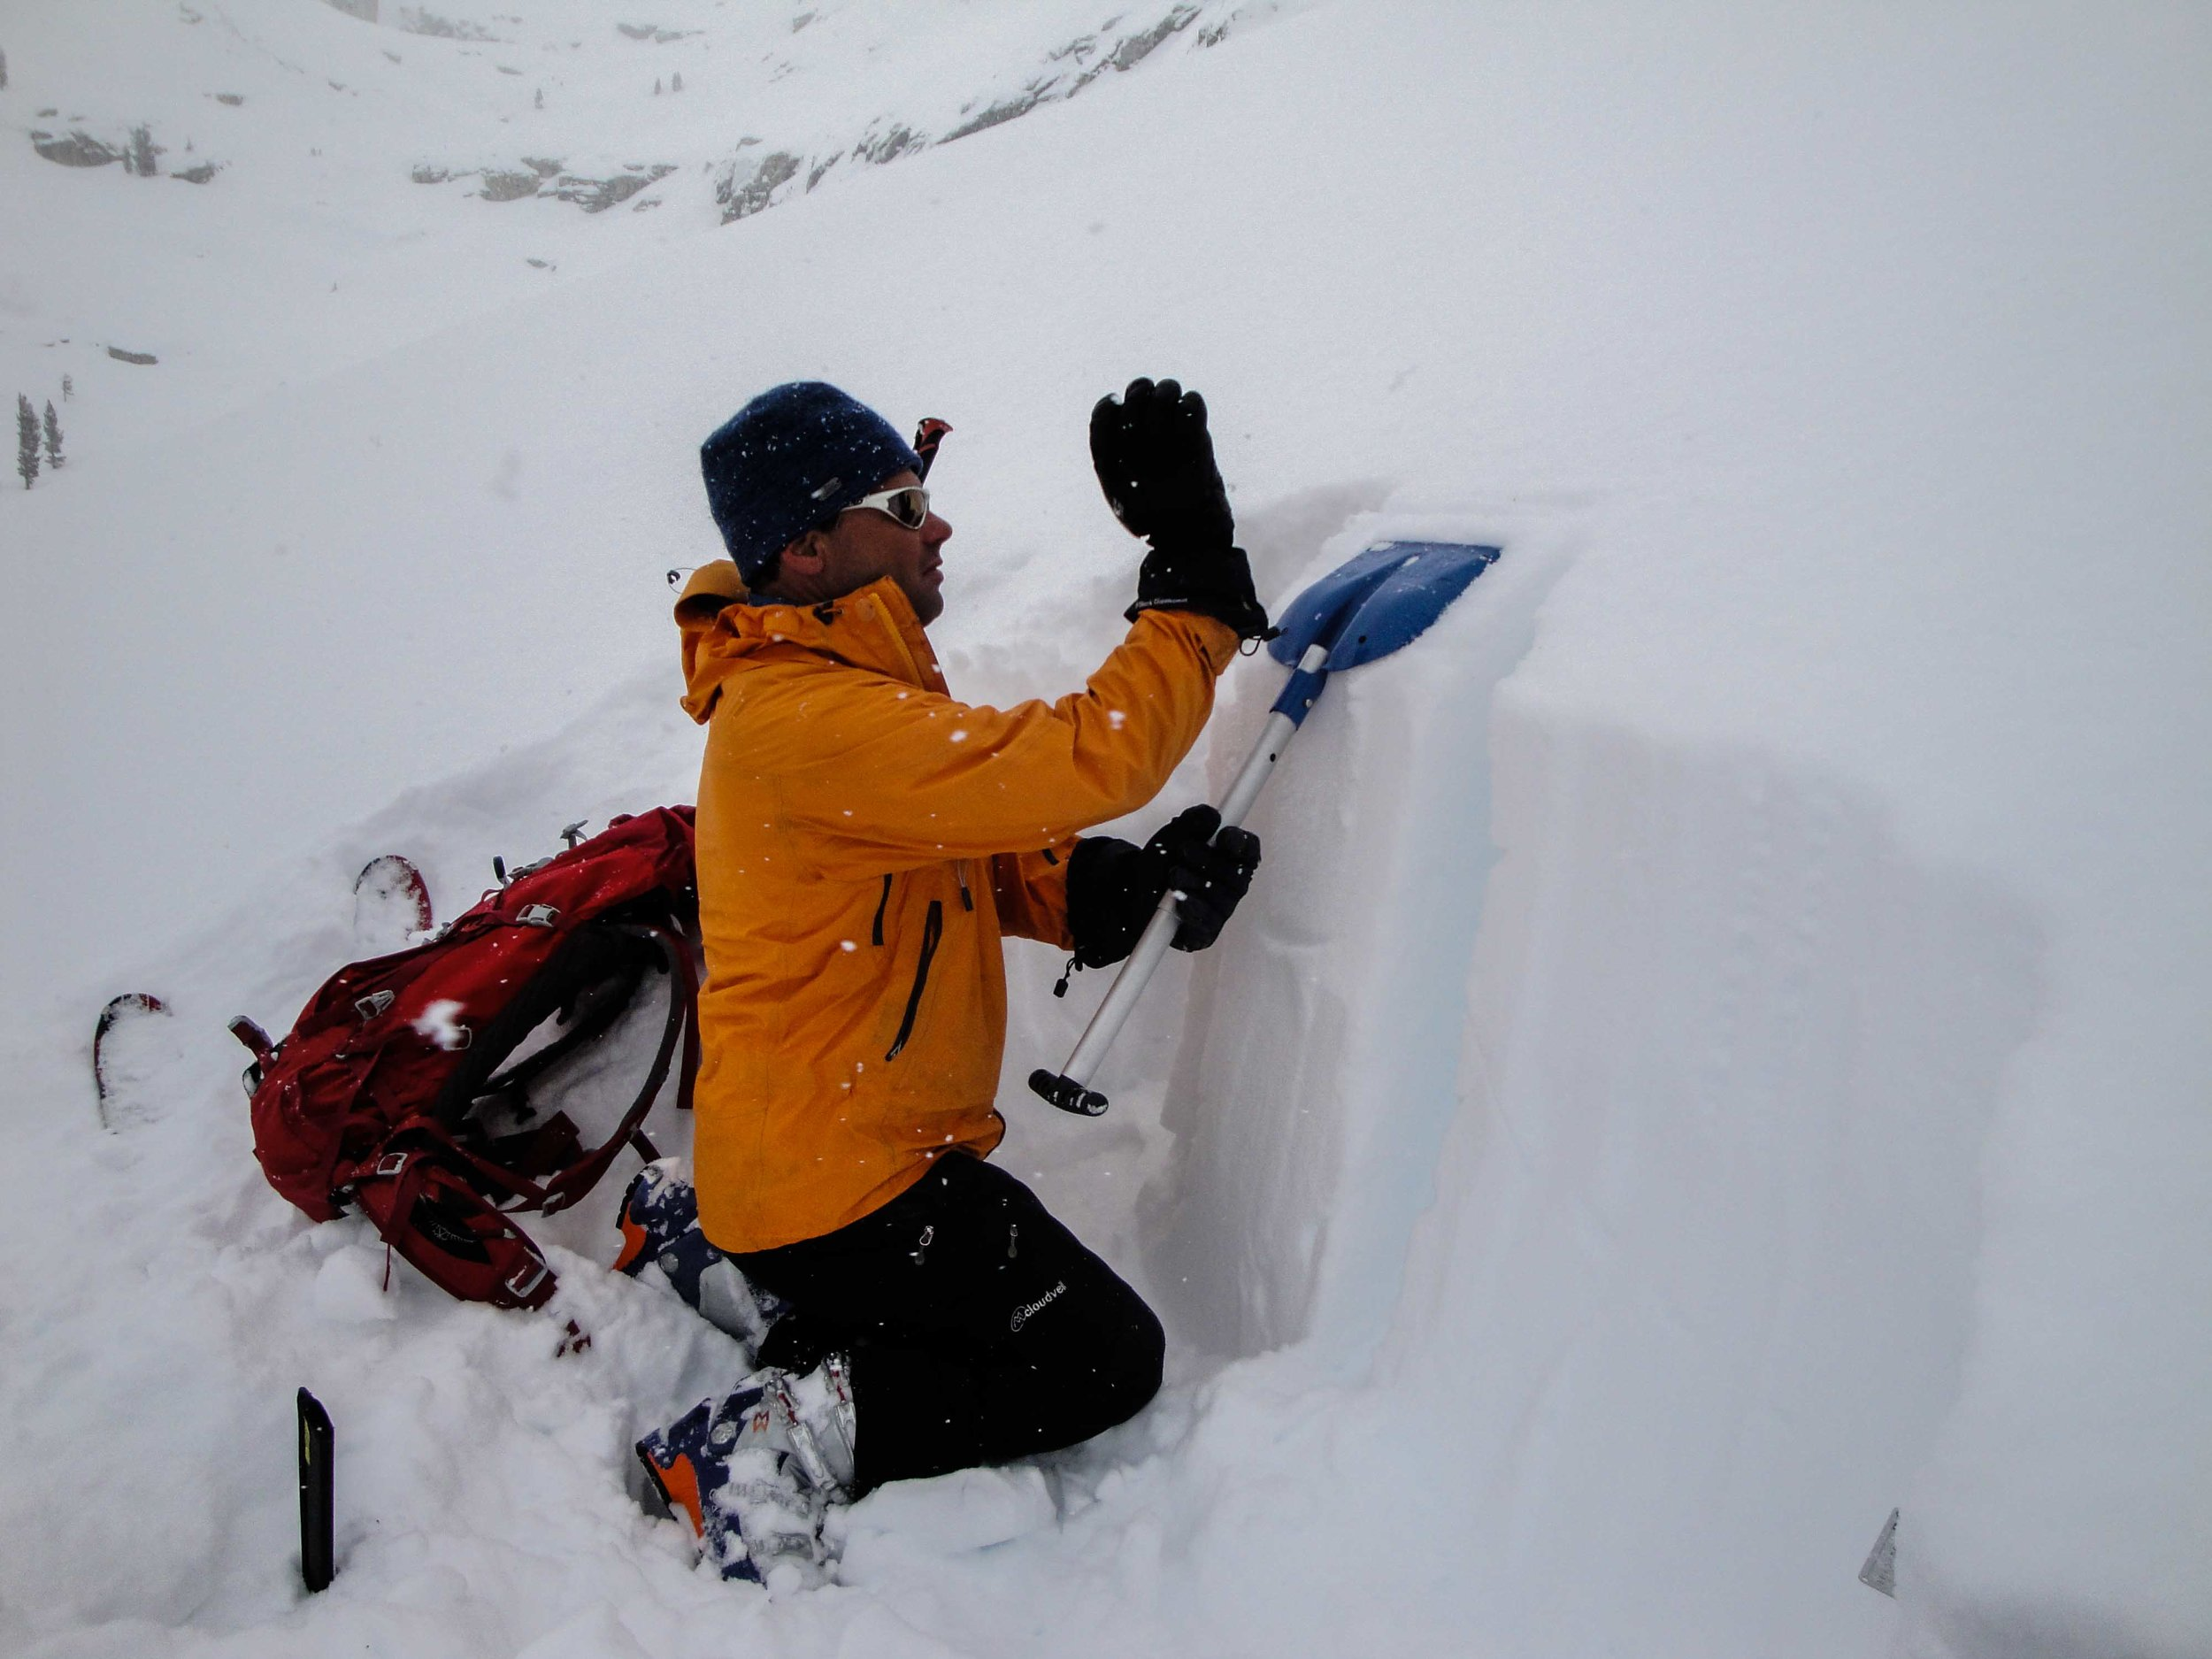 Snow pack evaluation